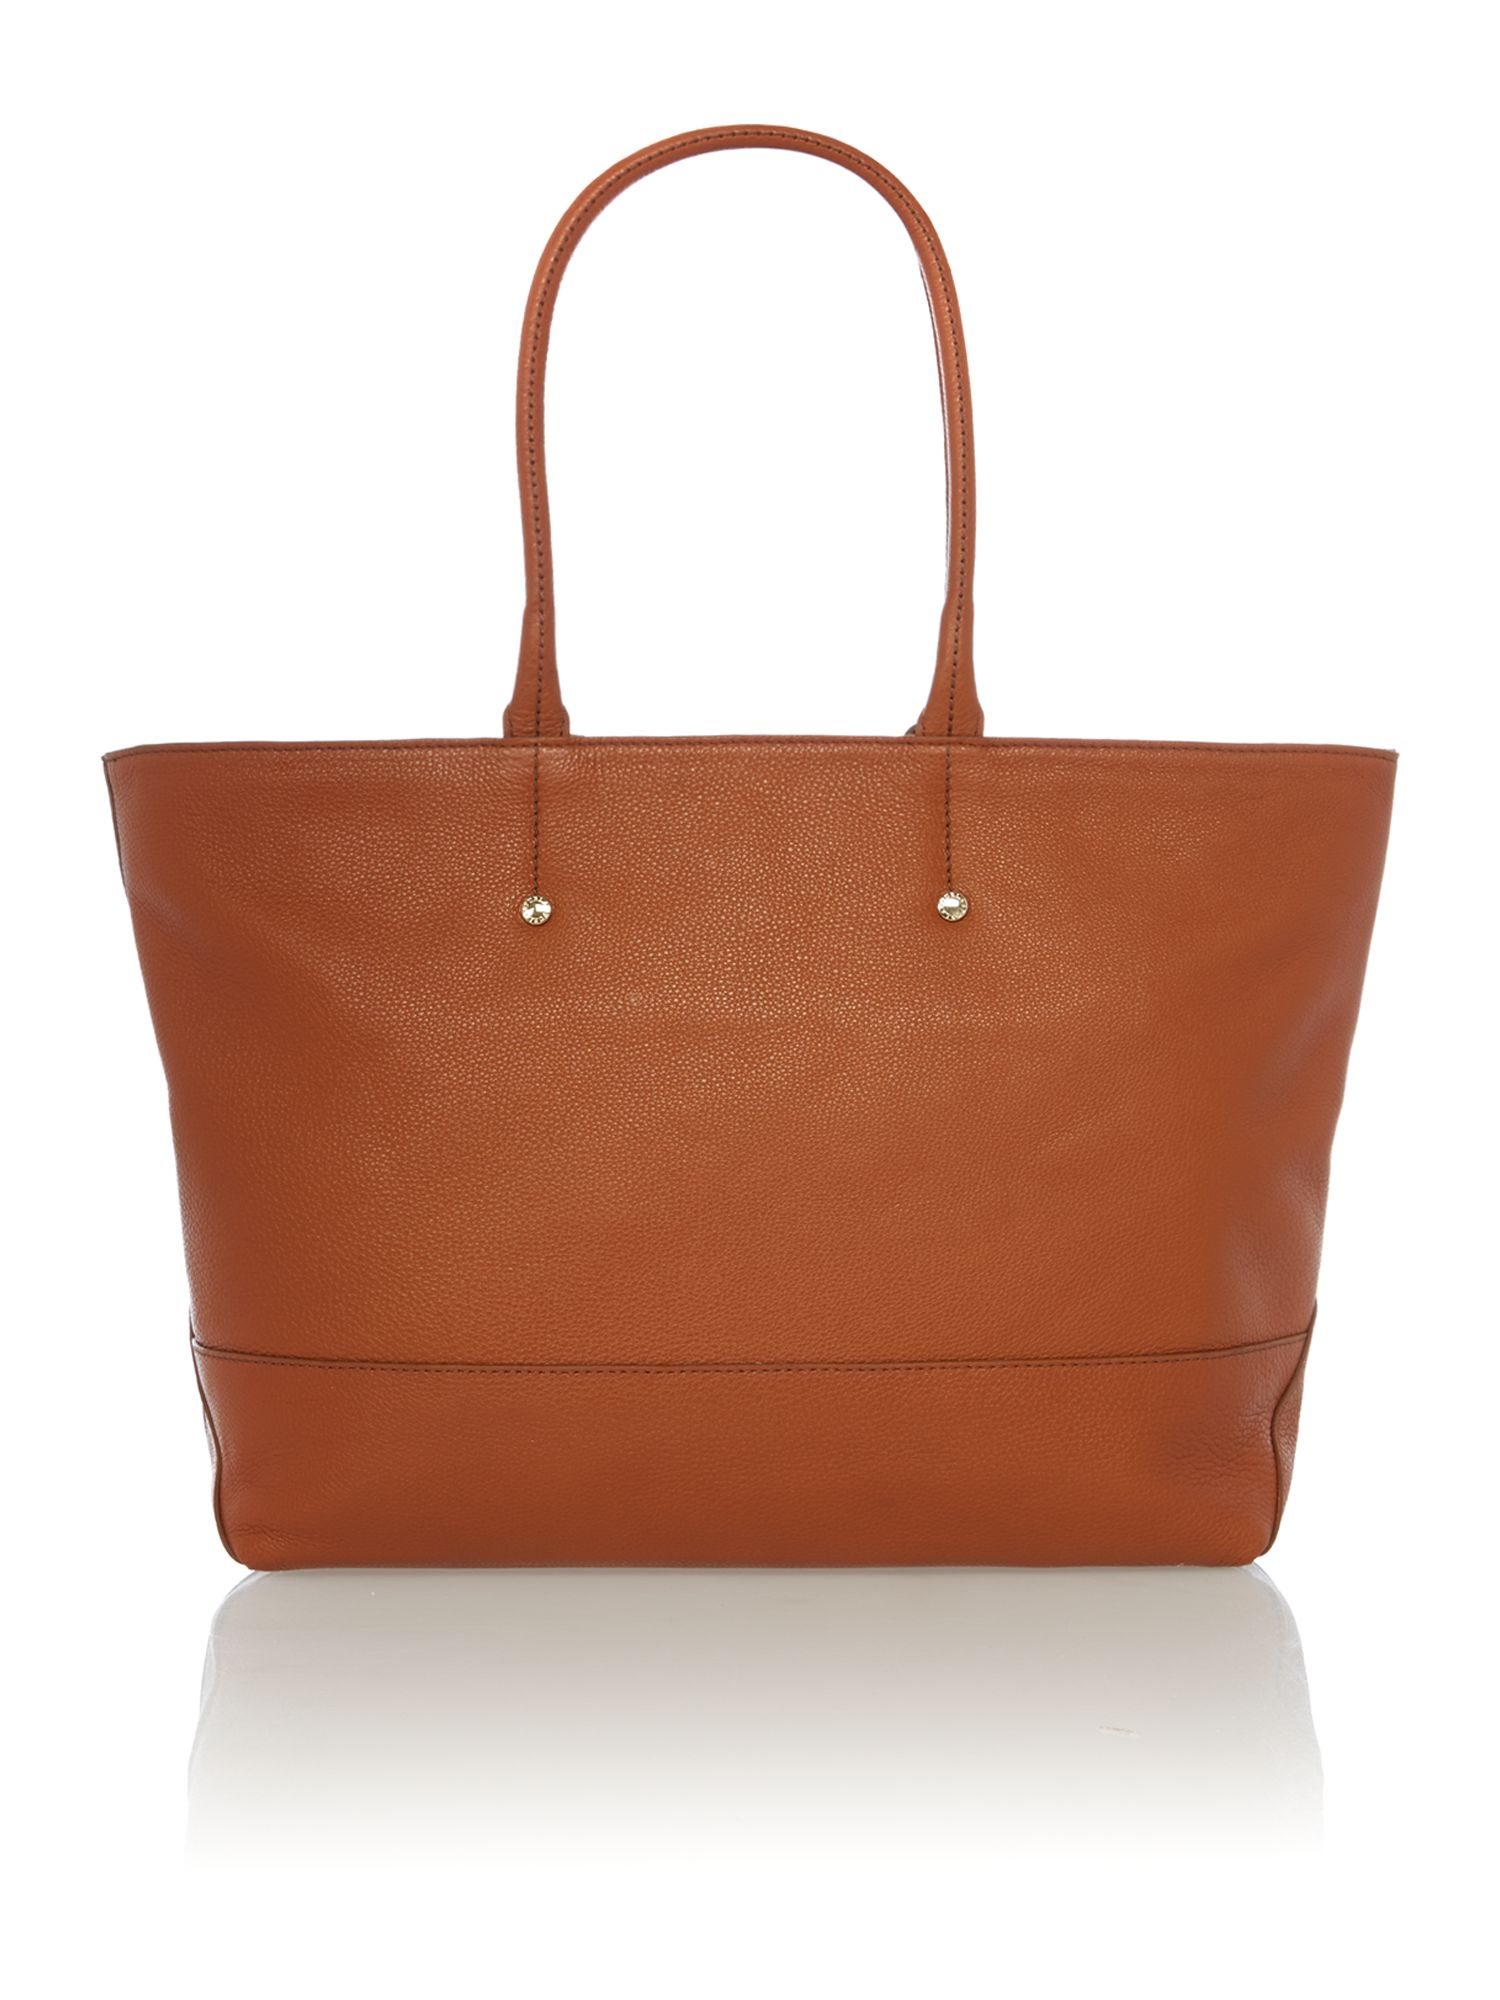 Melissa tan large tote bag